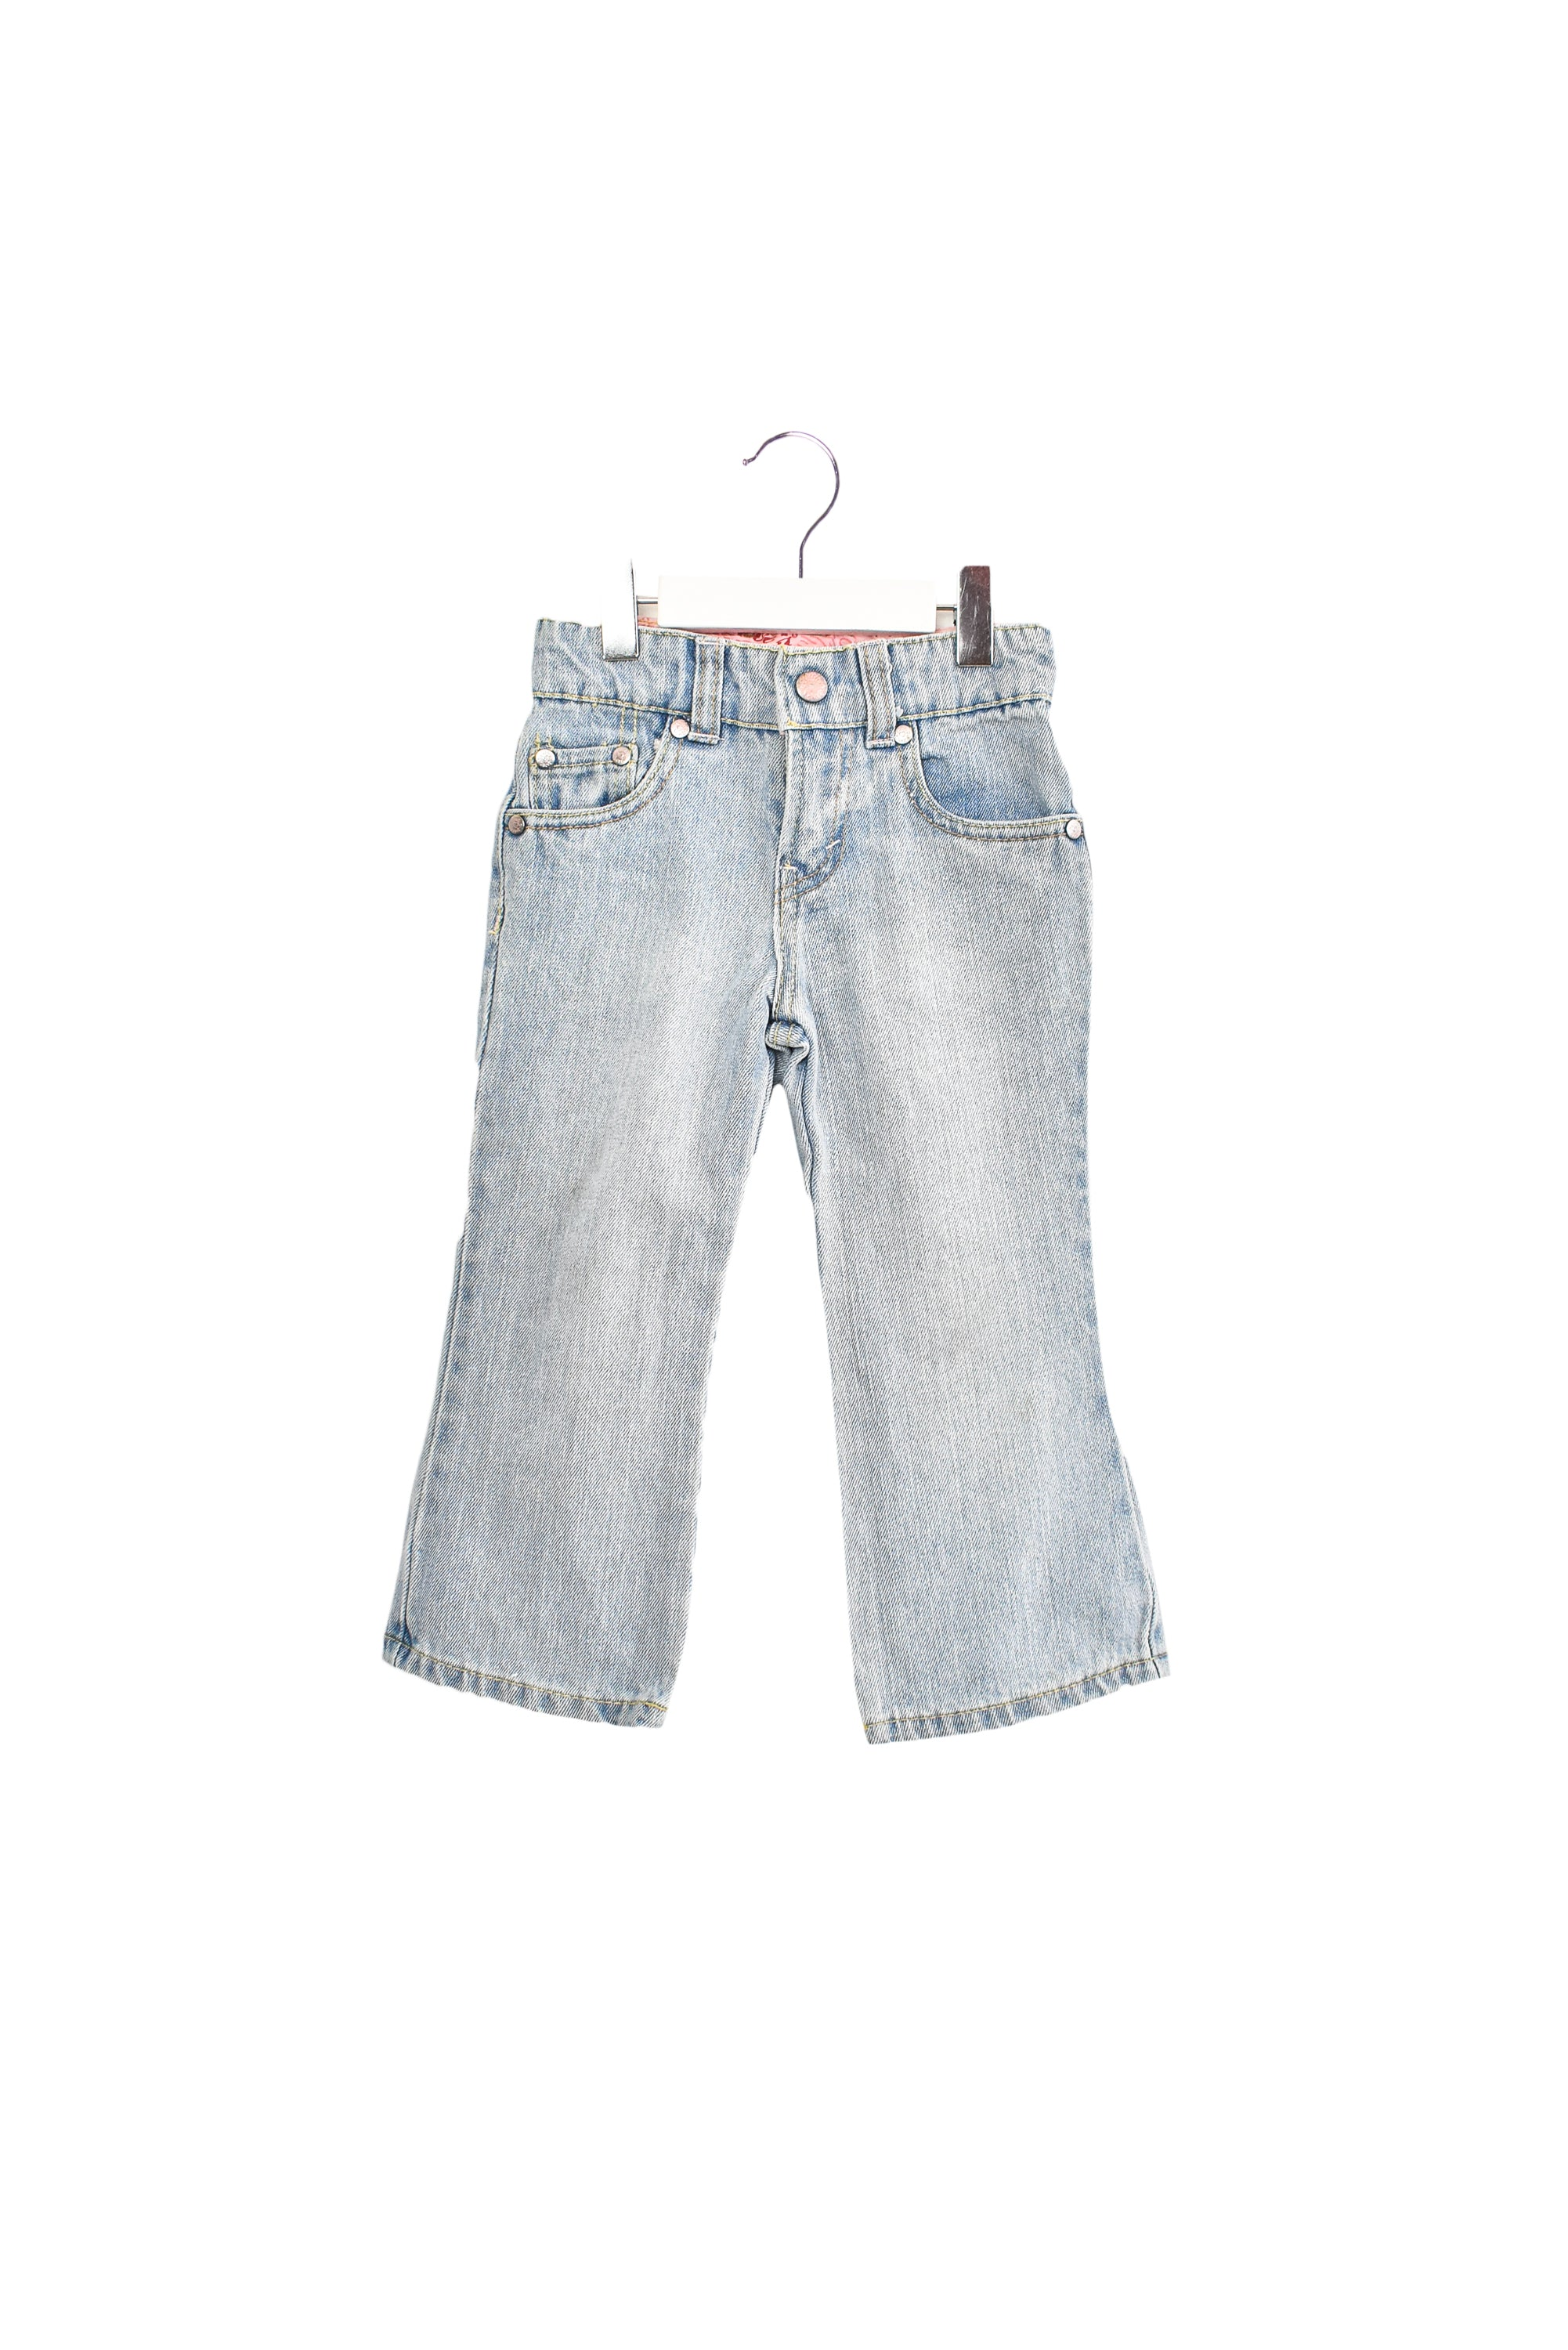 10009305 Levi's Kids~Jeans 2T at Retykle